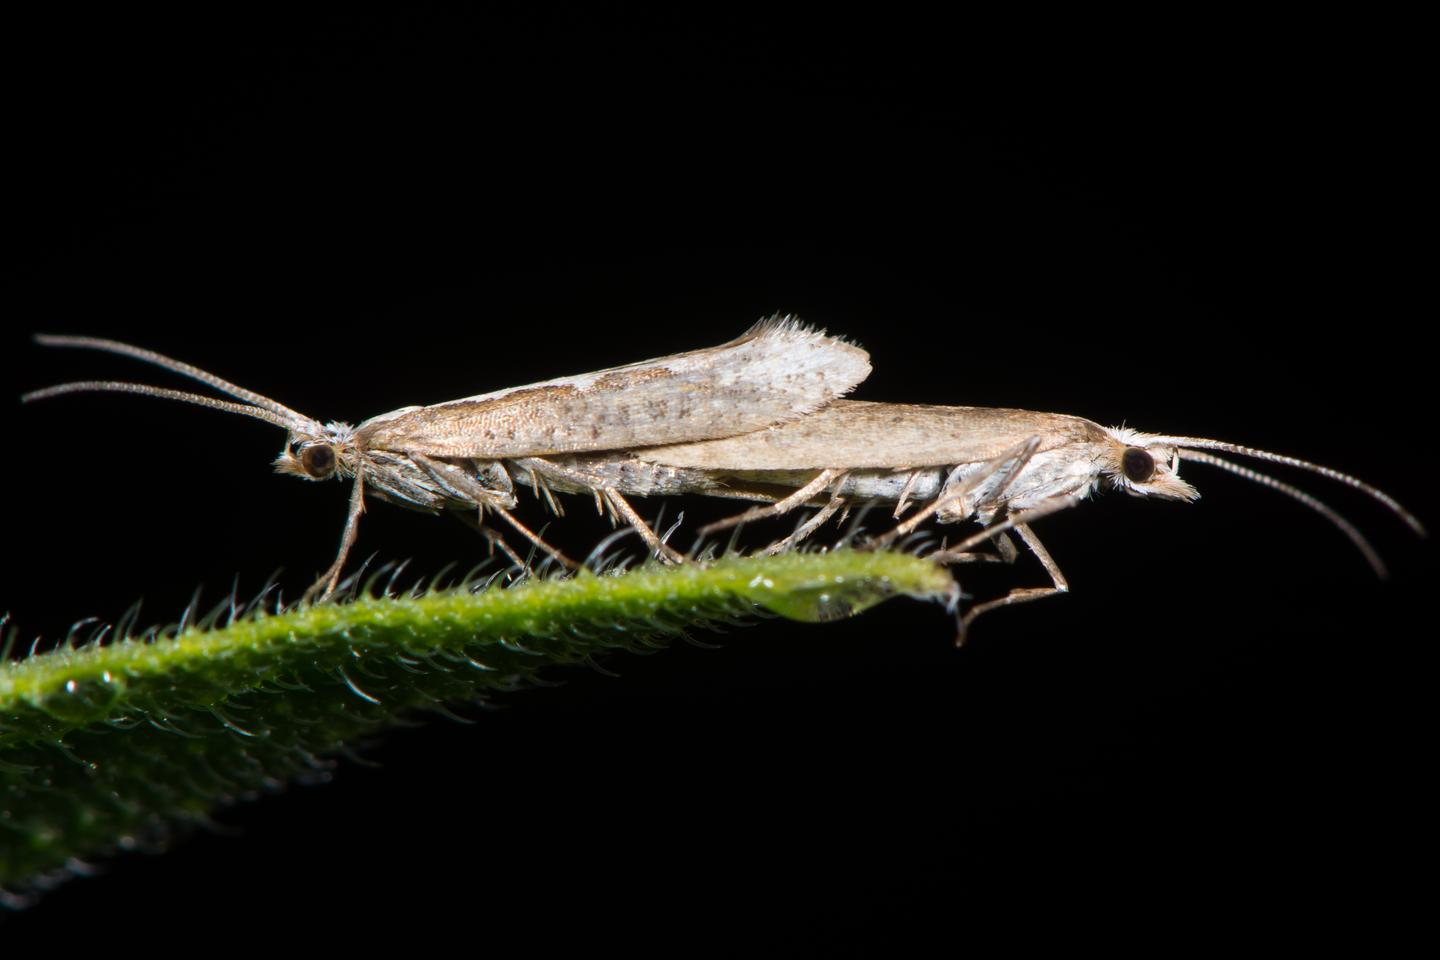 A mating pair of diamondback moths (Plutella xylostella) – the genetically-modified strain is commercially known as the Friendly moth